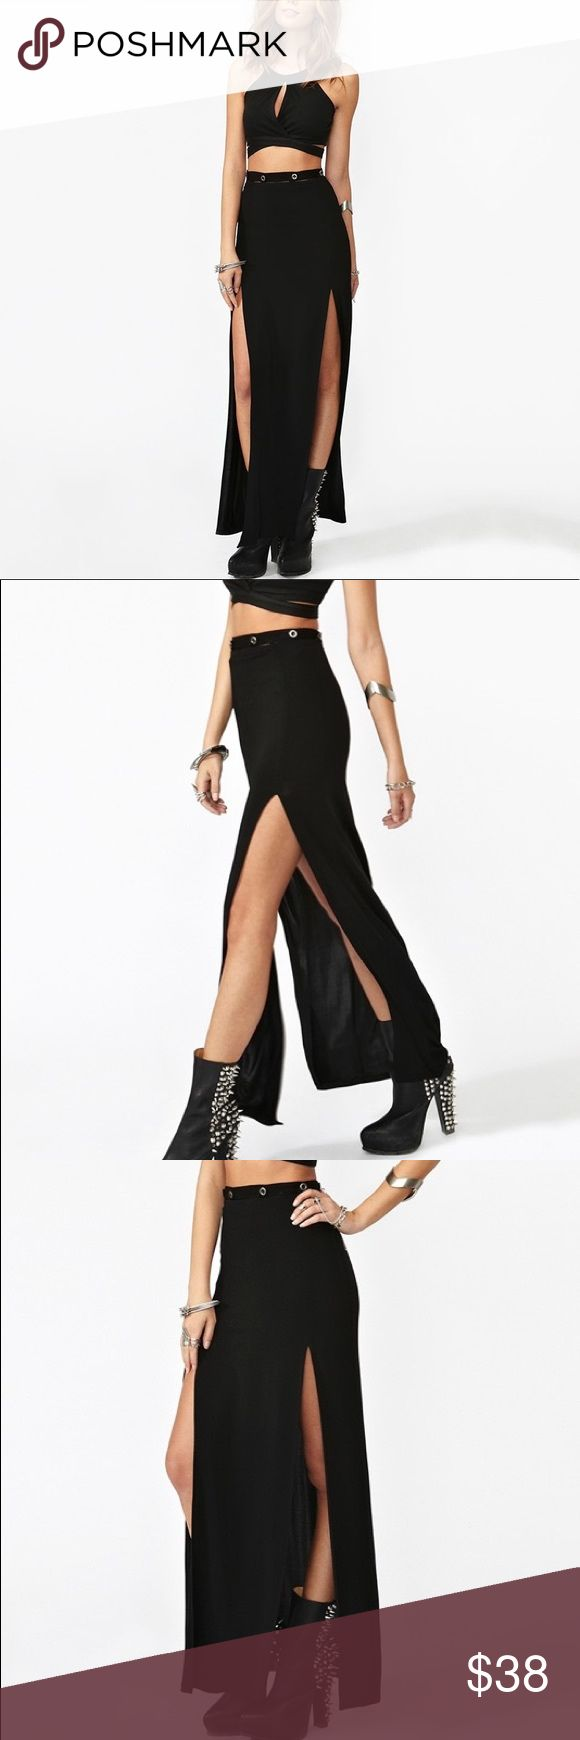 Nasty Gal Black Long Maxi Skirt Rayon Slit XS NWOT NWOT. Never worn. Beautiful Nasty Gal Surrender Maxi Skirt Black long full length 2 slits button high waist. The top of the skirt has a detachable strip with buttons that keep it in place like a suspended belt. There is a gap between the top of the skirt and the bottom of this belt which would show some skin through. 2 long thigh slits that are super sexy. No lining. Size XS Nasty Gal Skirts Maxi